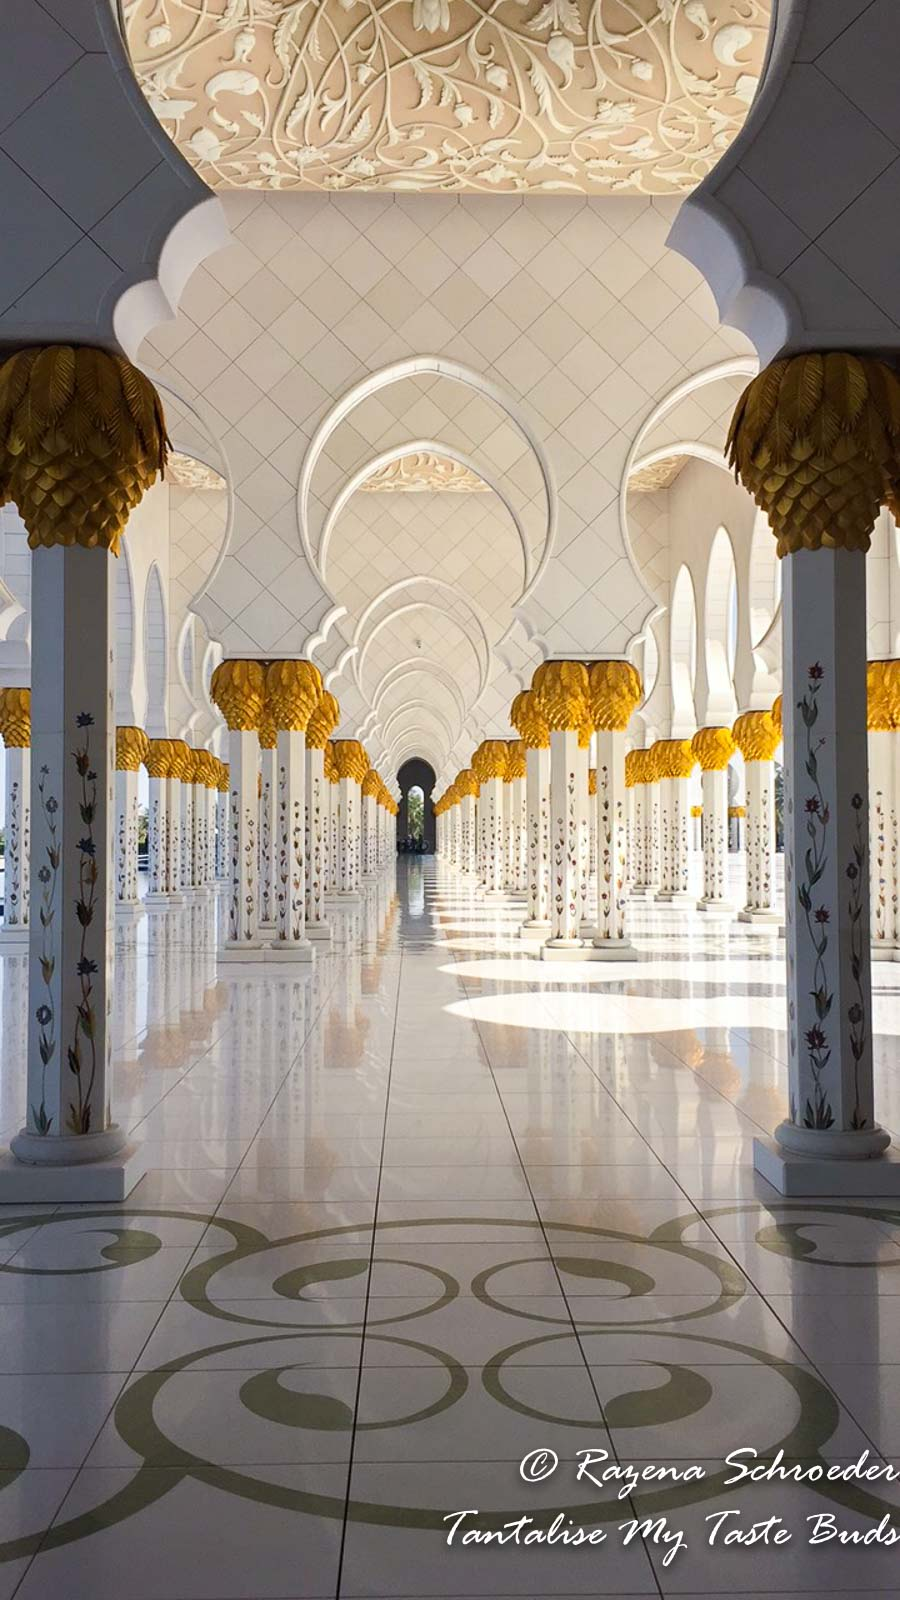 Under the arches at Shaikh Zayed Mosque Abu Dhabi